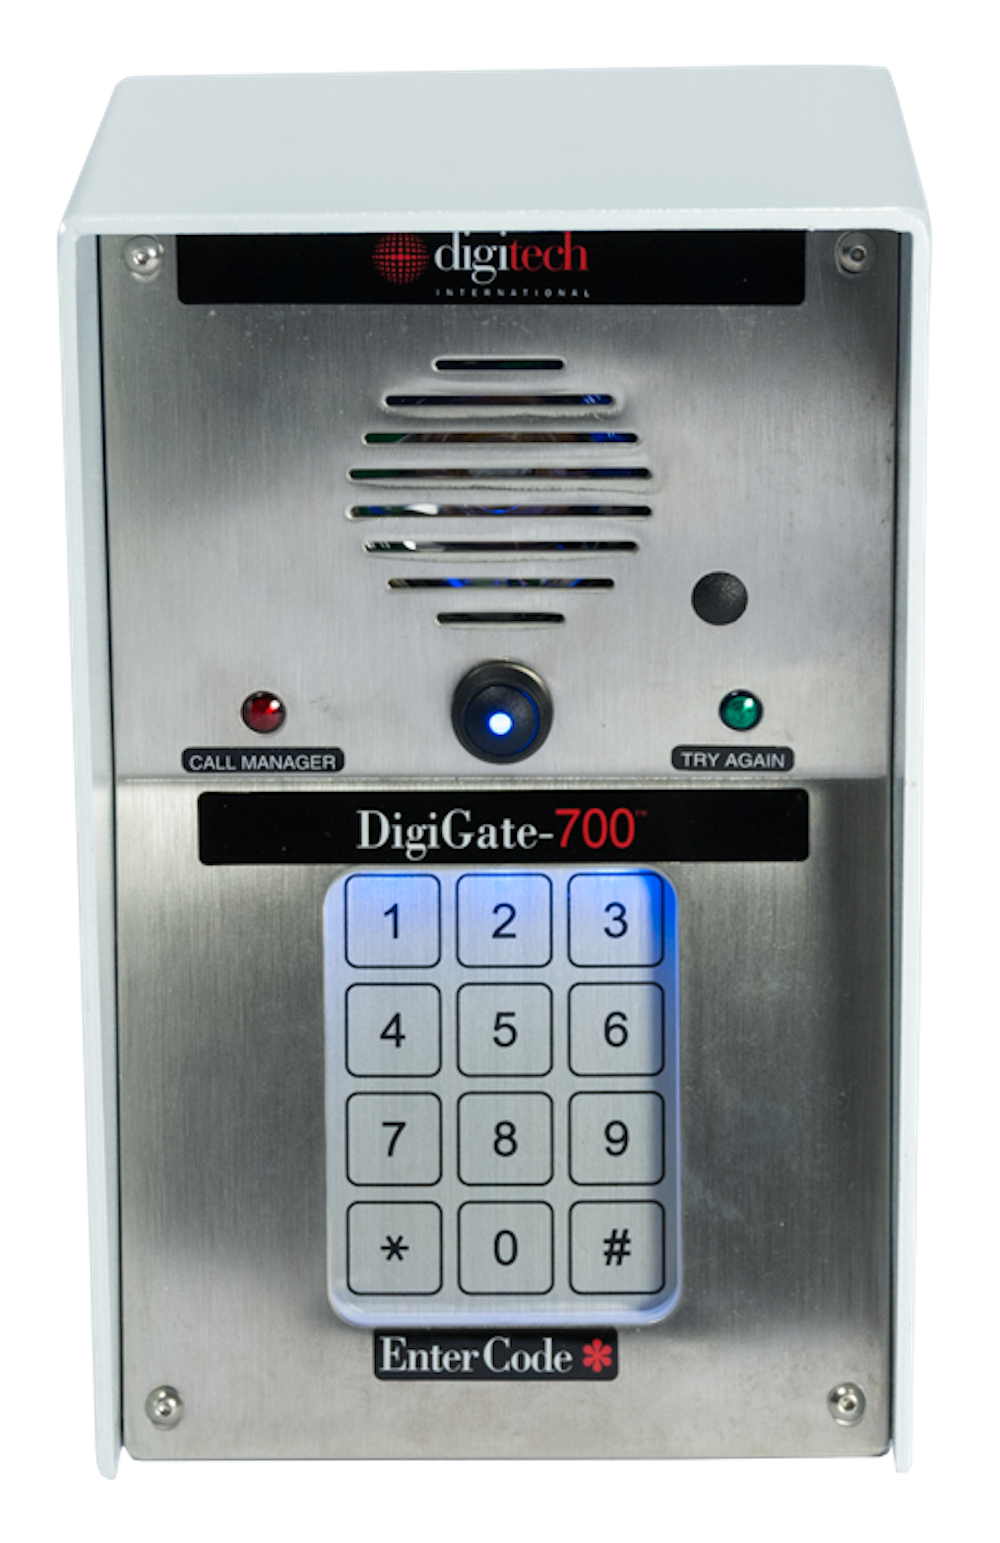 Ceeco Metal Keypad Wiring Diagram Ccd3 X8r Librarydigigate Keypads From Pti Security Systems 700